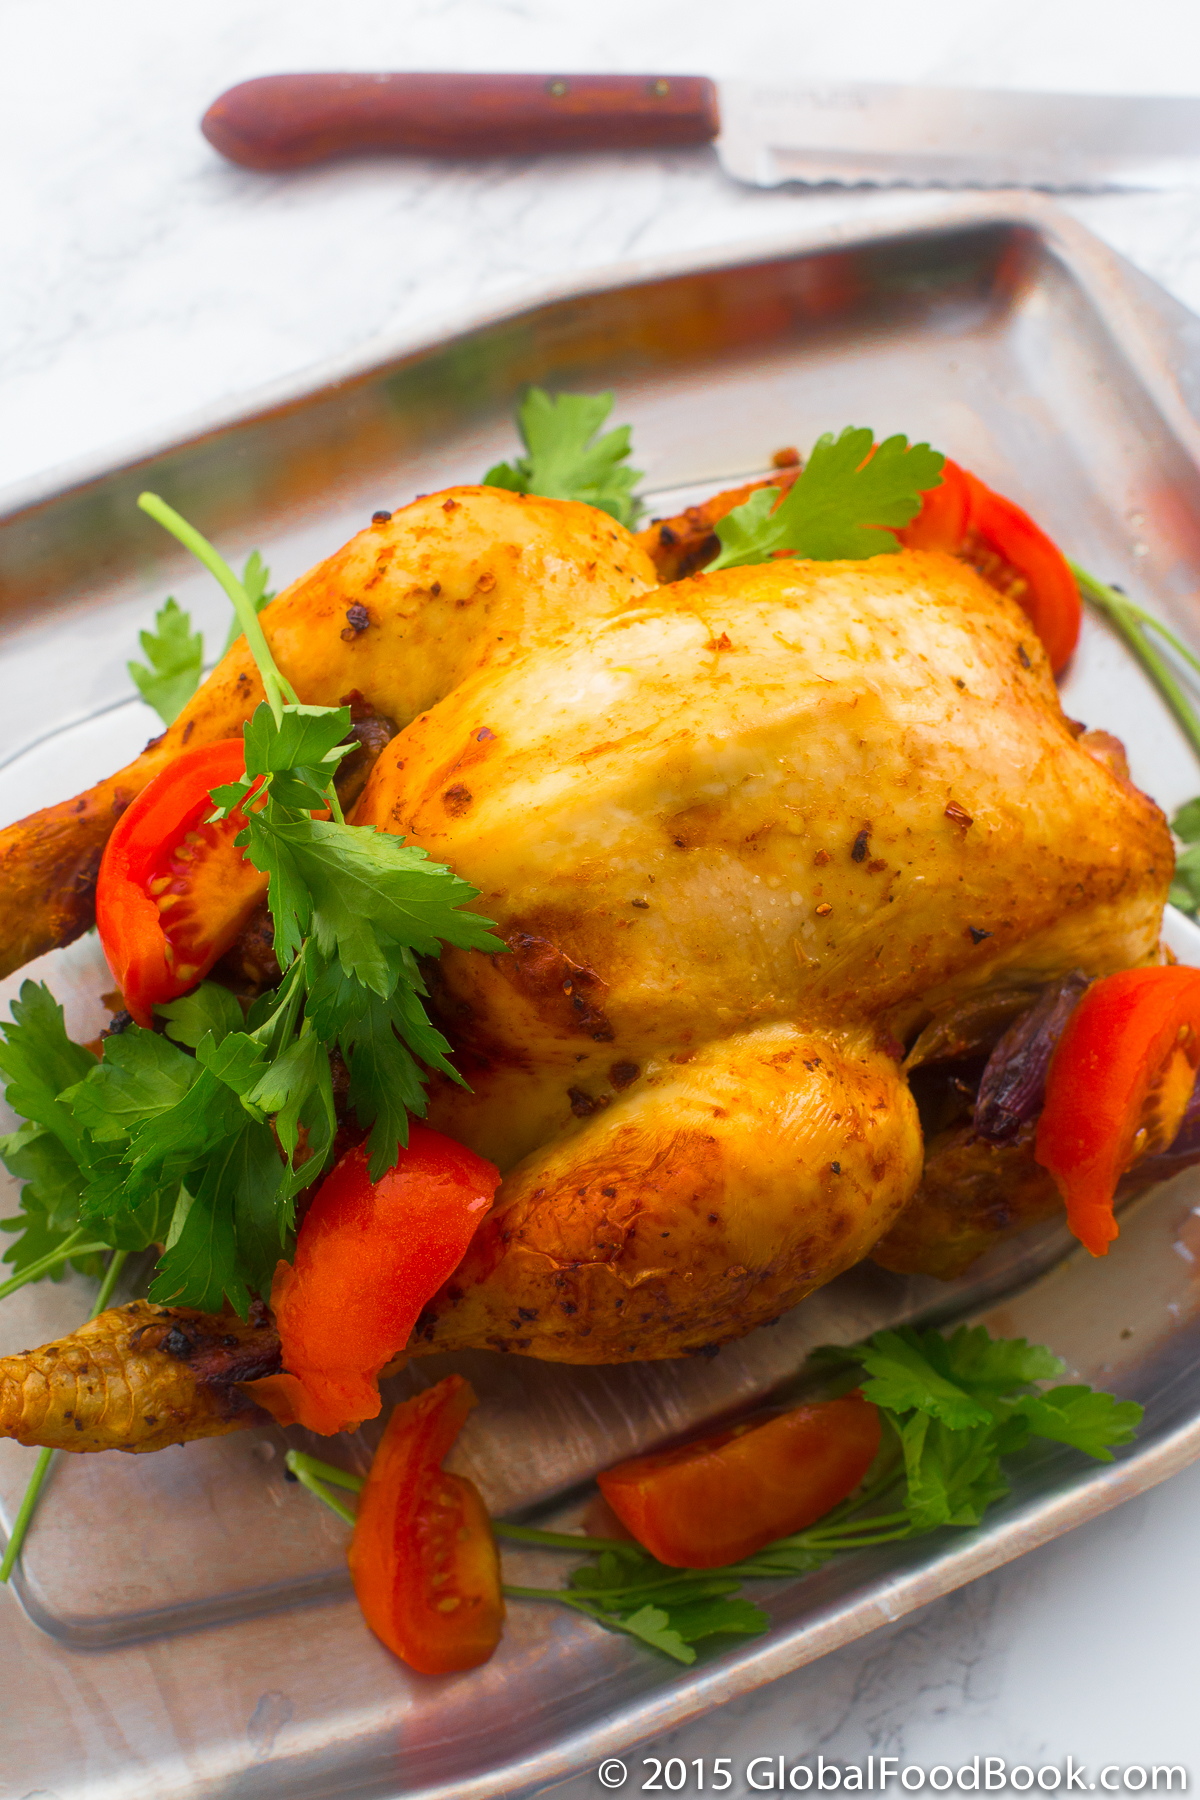 HONEY LEMON ROASTED CHICKEN